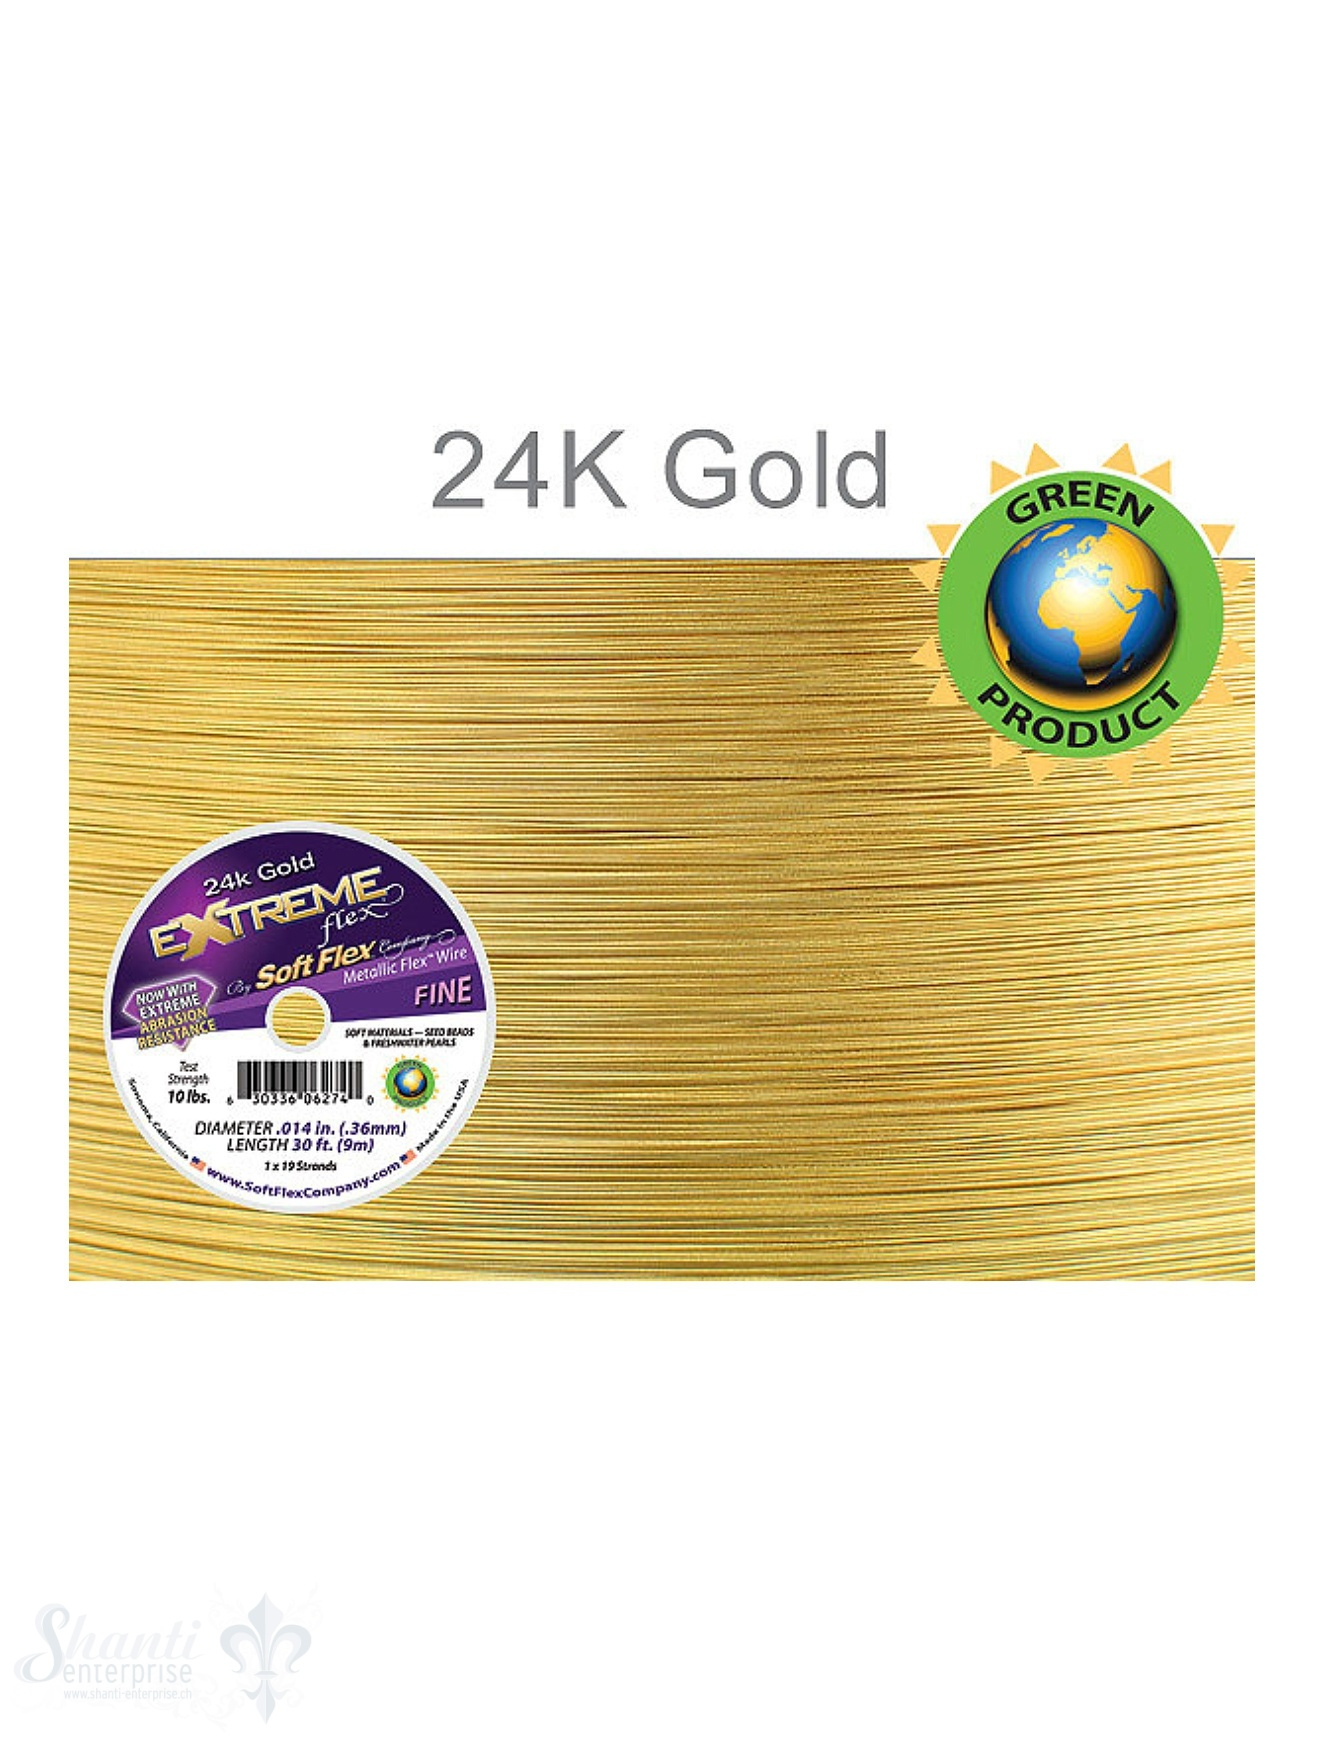 Soft Flex Soft Flex Gold 24k